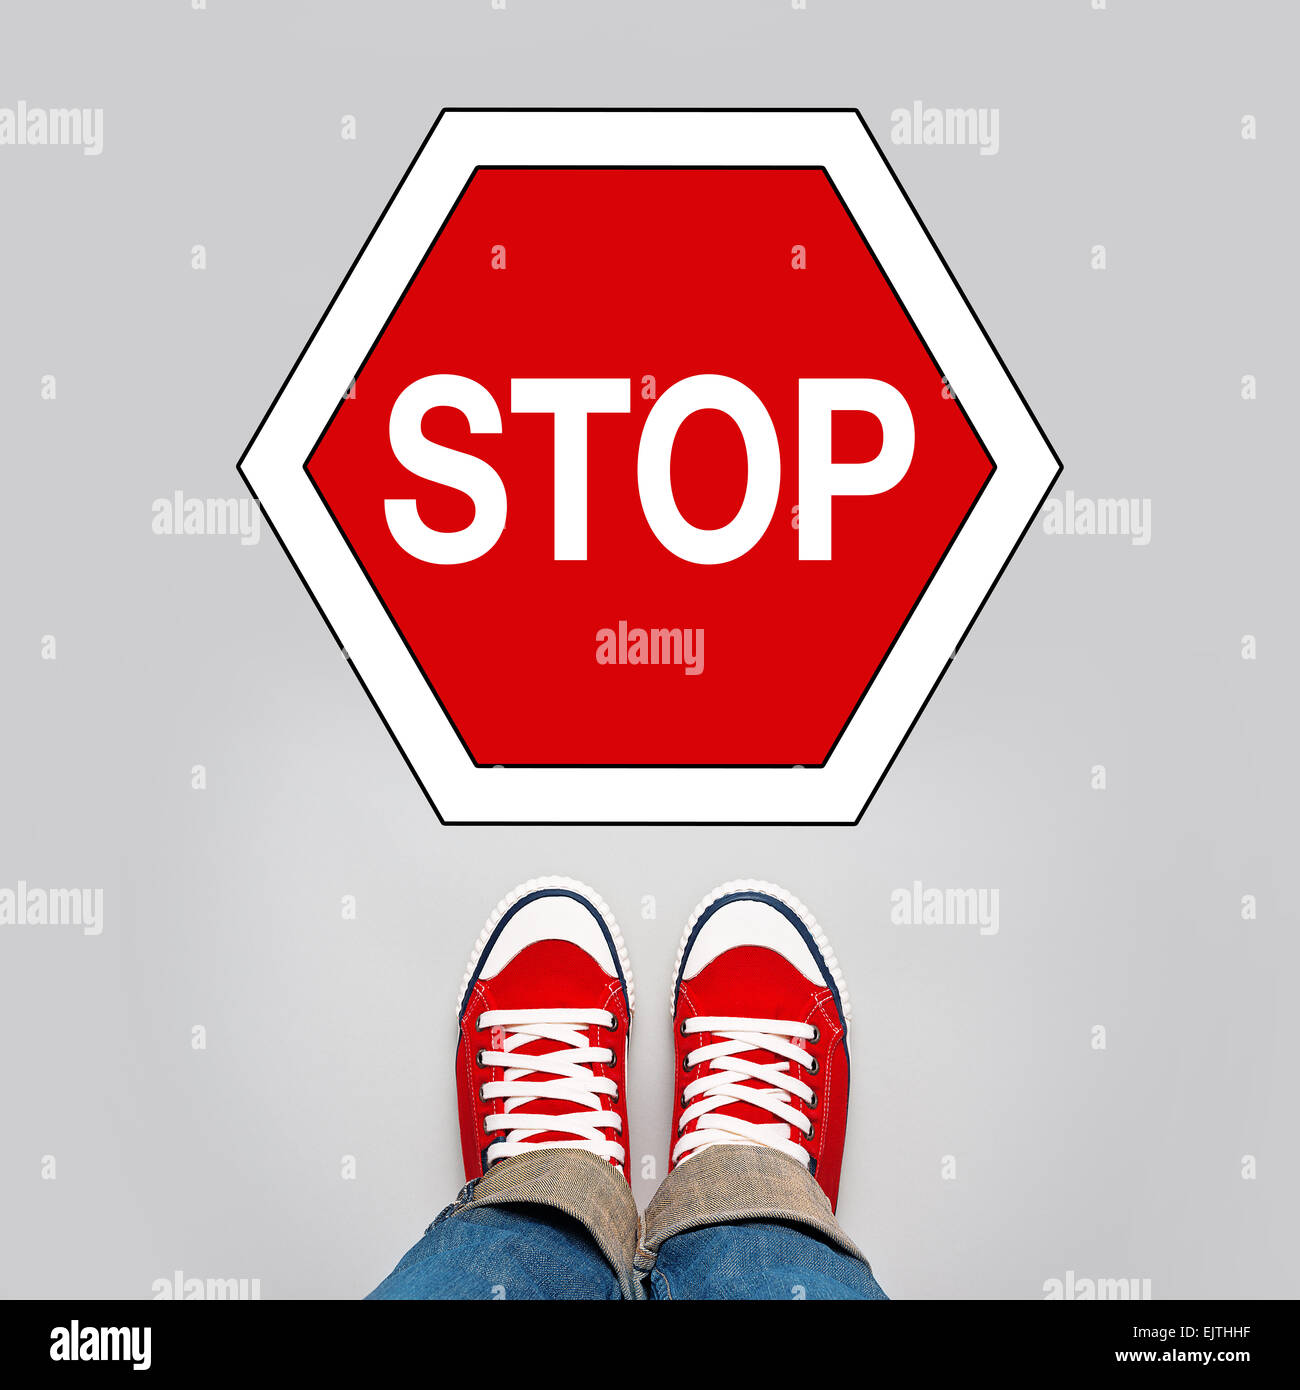 Stop Concept, Young Teenage Person in Red Sneakers Standing in Front of Stop Traffic Sign Stock Photo